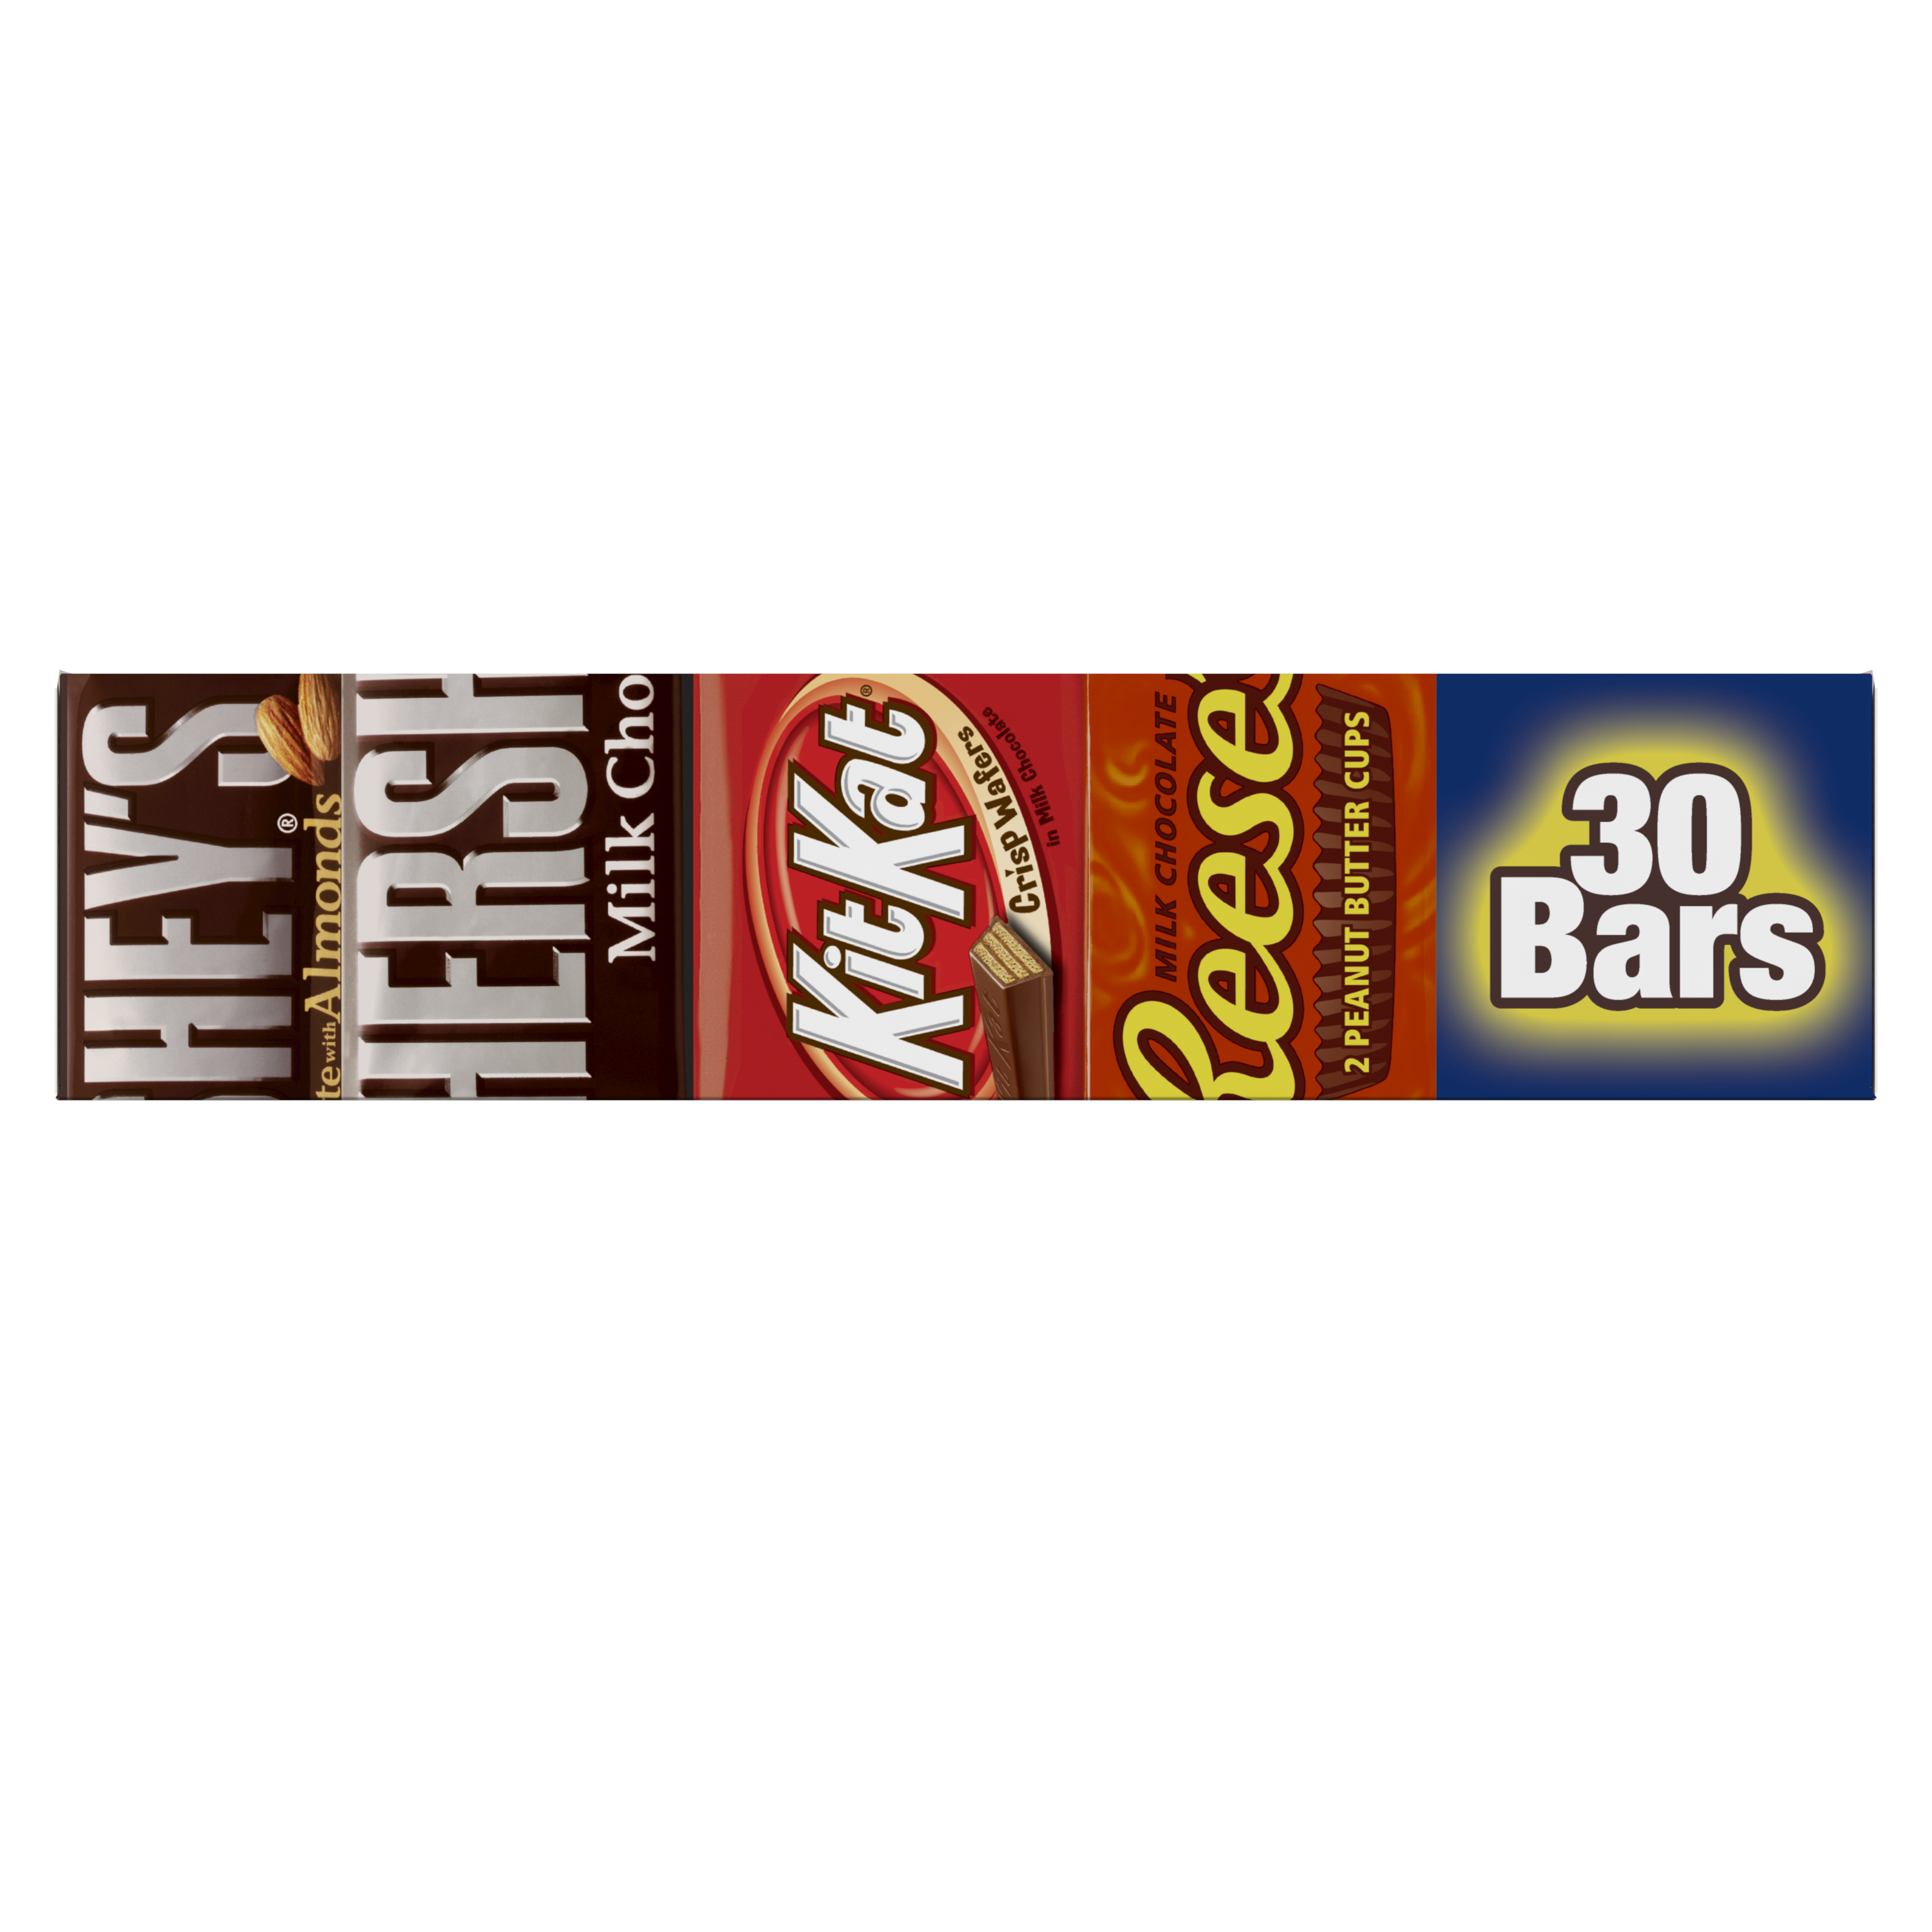 Hershey Variety Pack Milk Chocolate Candy Bars, 45 oz box, 30 bars - Front of Package